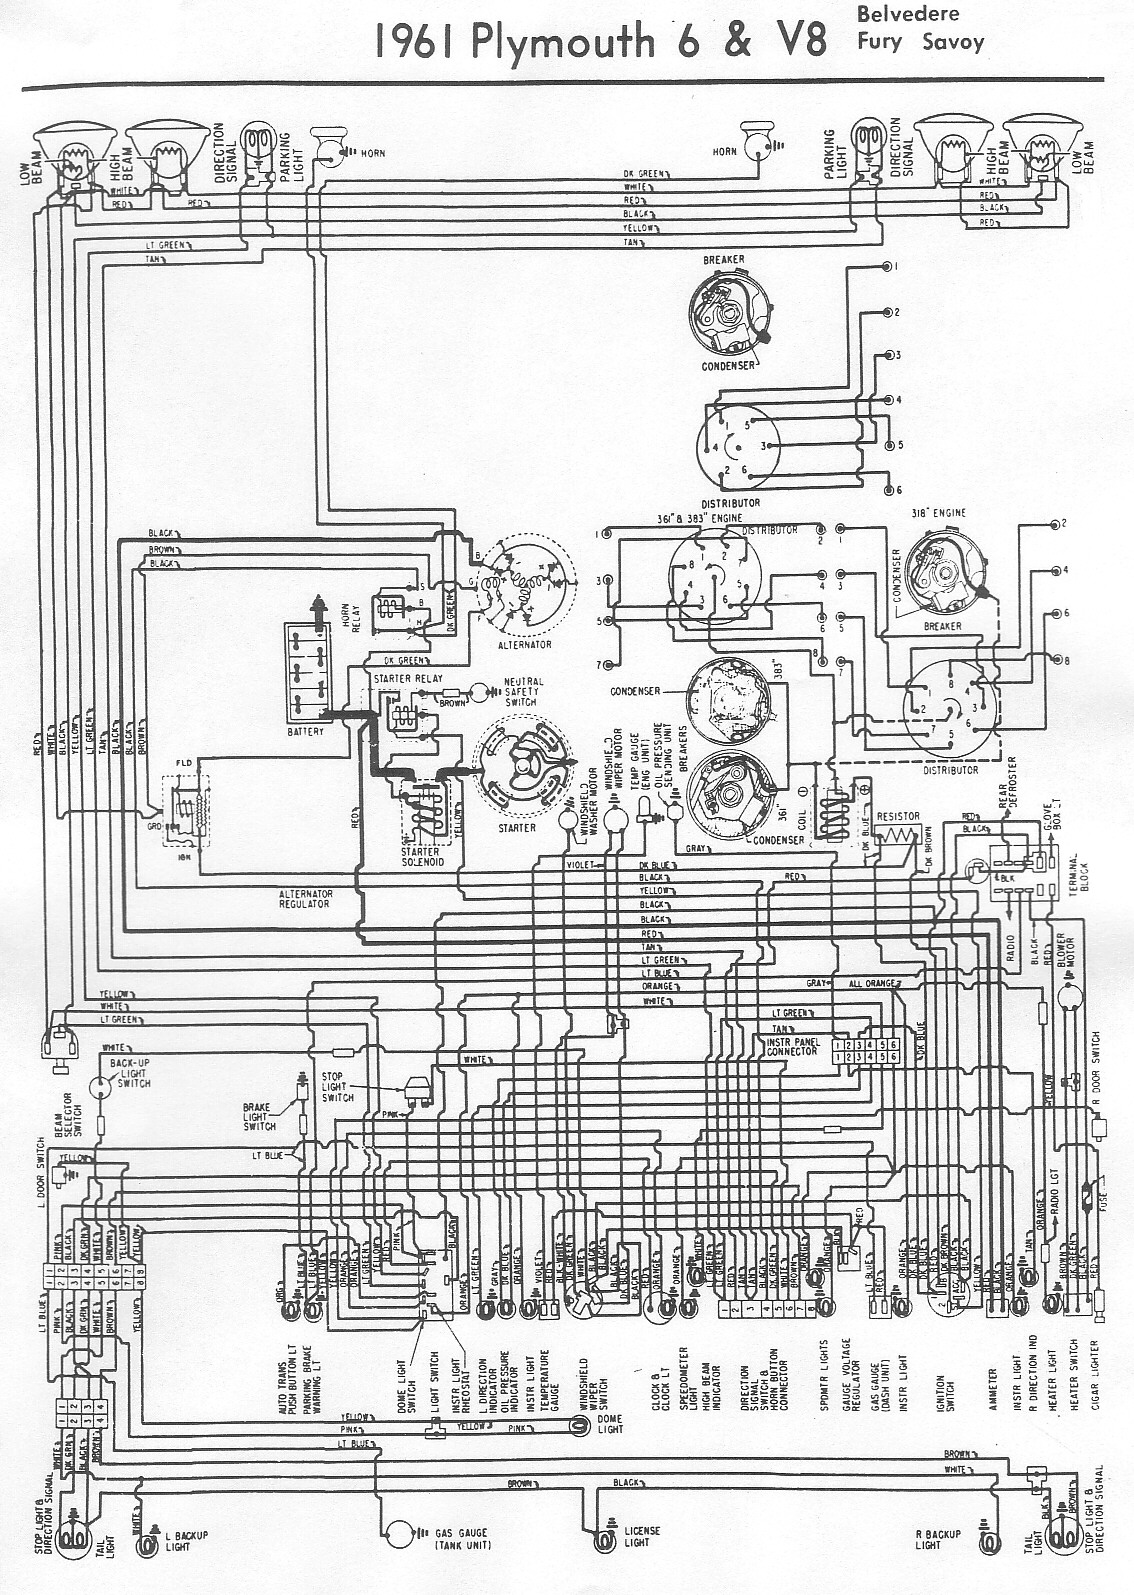 1973 mustang mach 1 voltage regulator wiring diagram 1973